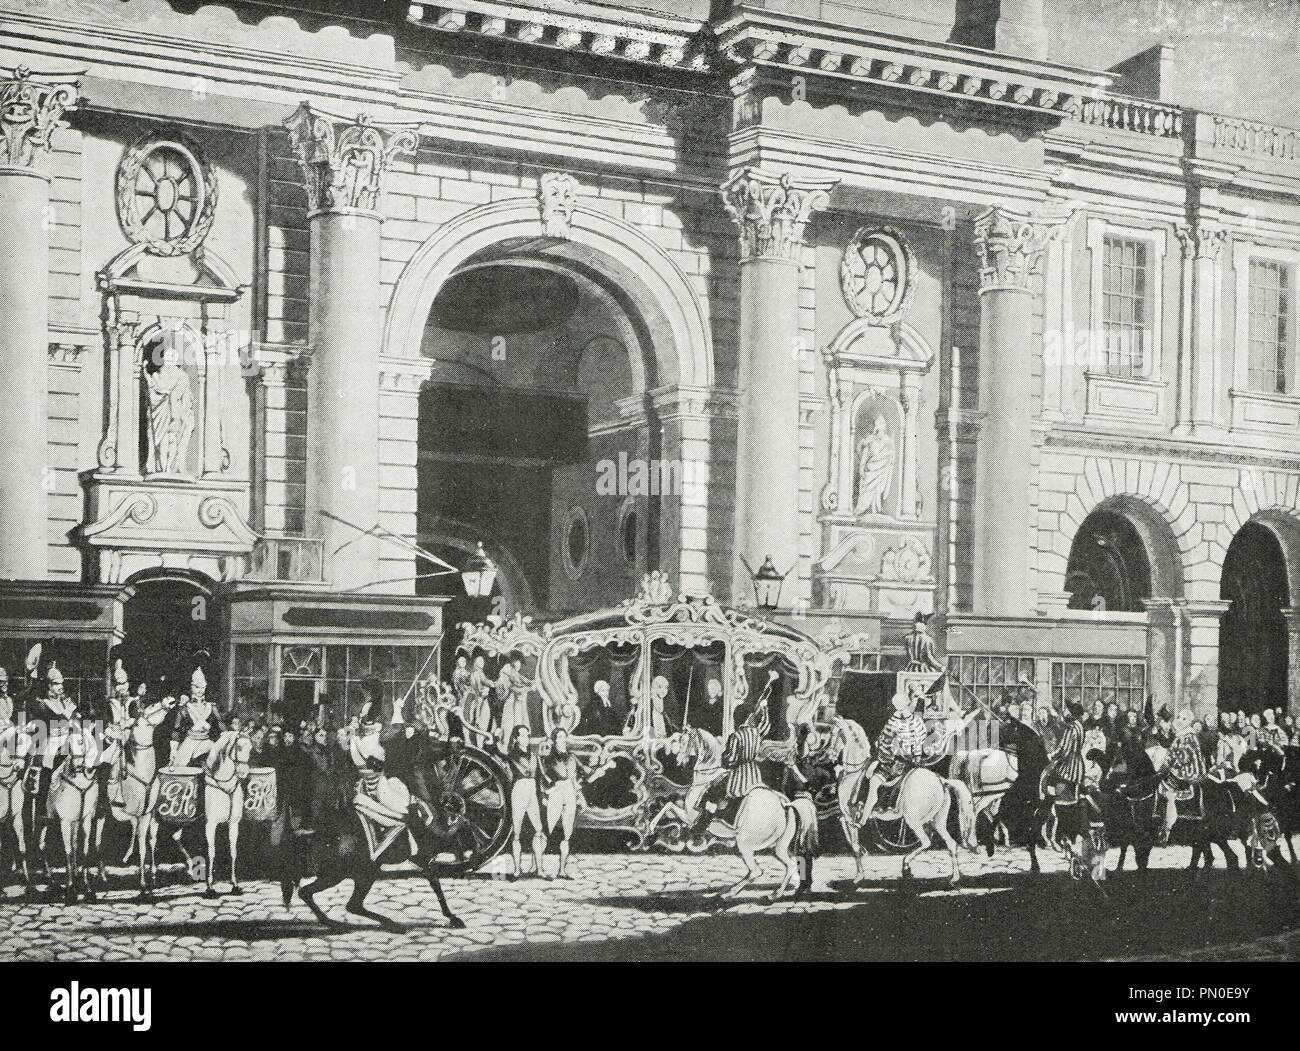 Proclamation of King George IV, at the Royal Exchange, 31 January 1820 - Stock Image